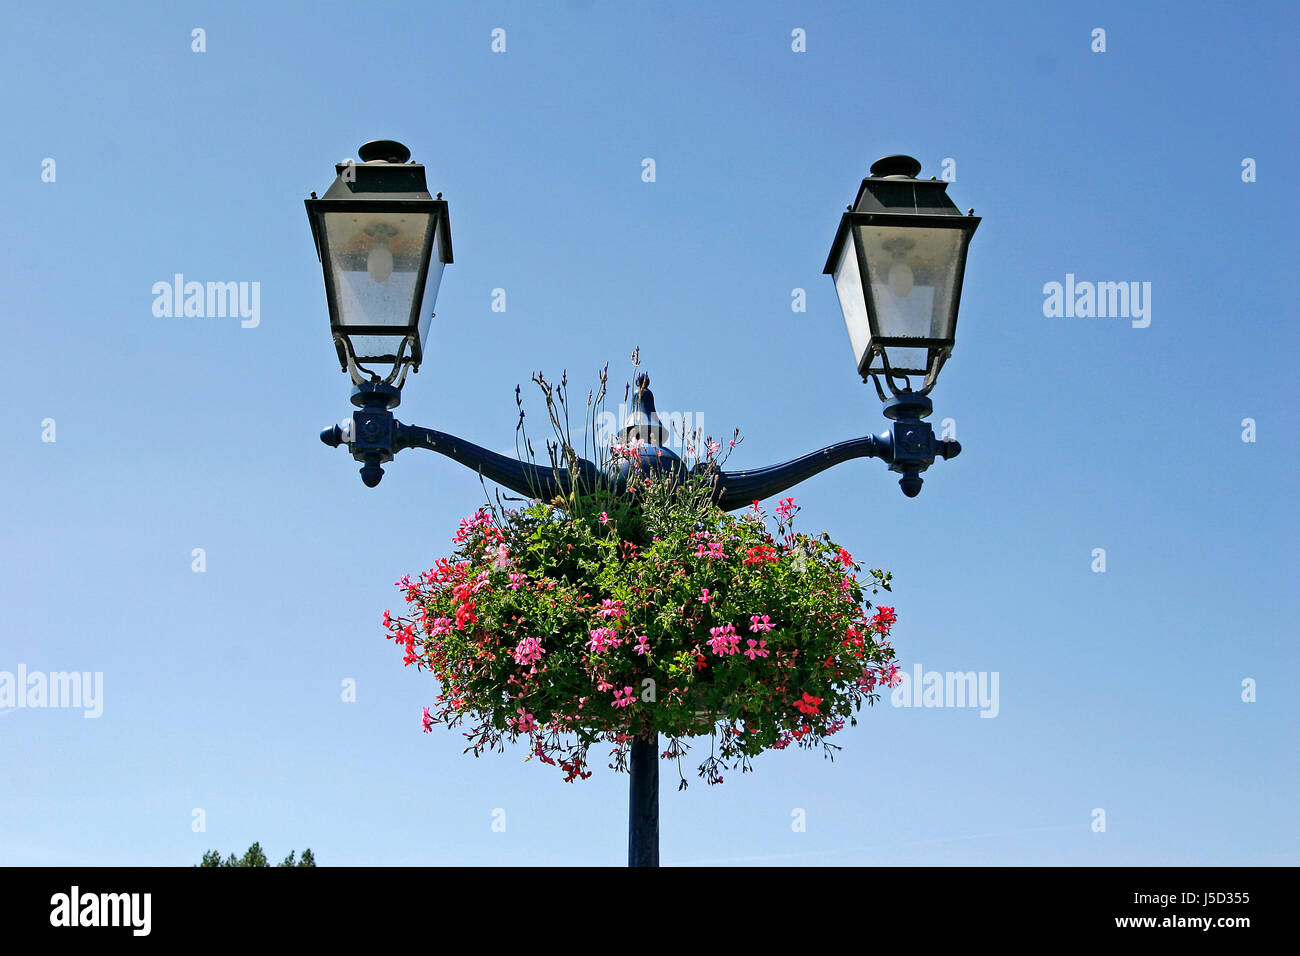 erdeven,streetlight with flowers - Stock Image